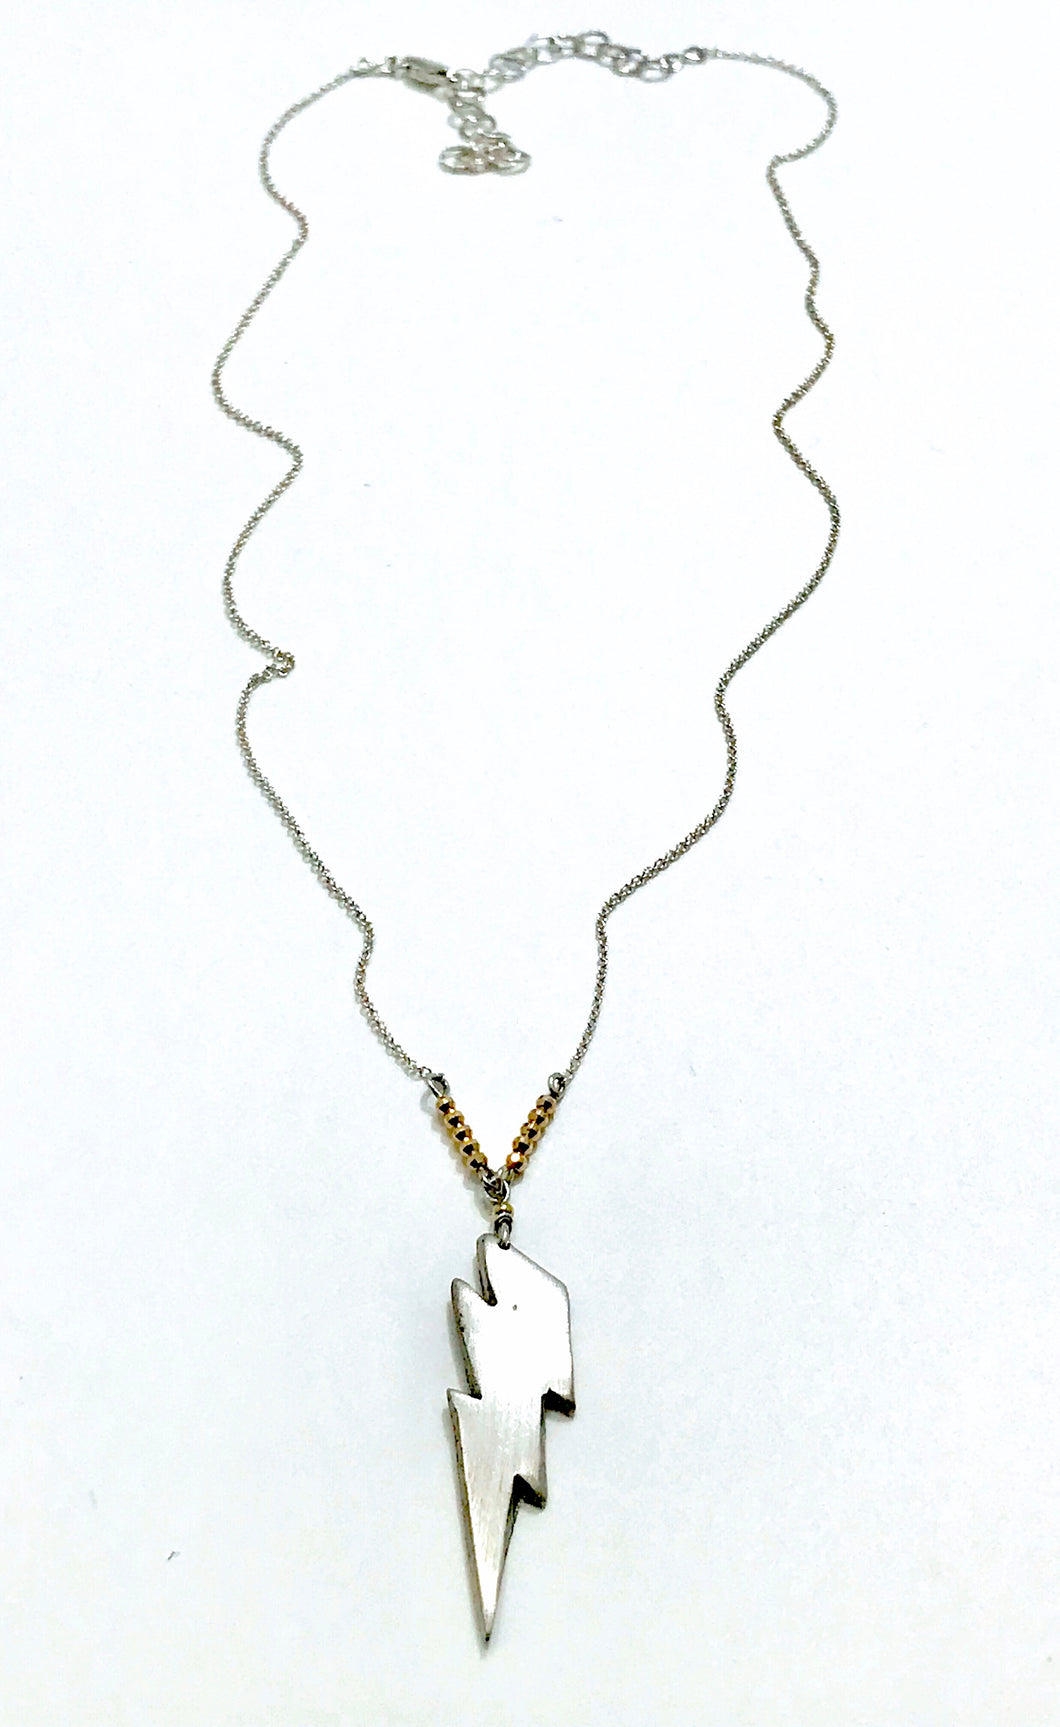 ✨Sterling Silver & 14KT Gold Lightening Bolt Necklace✨